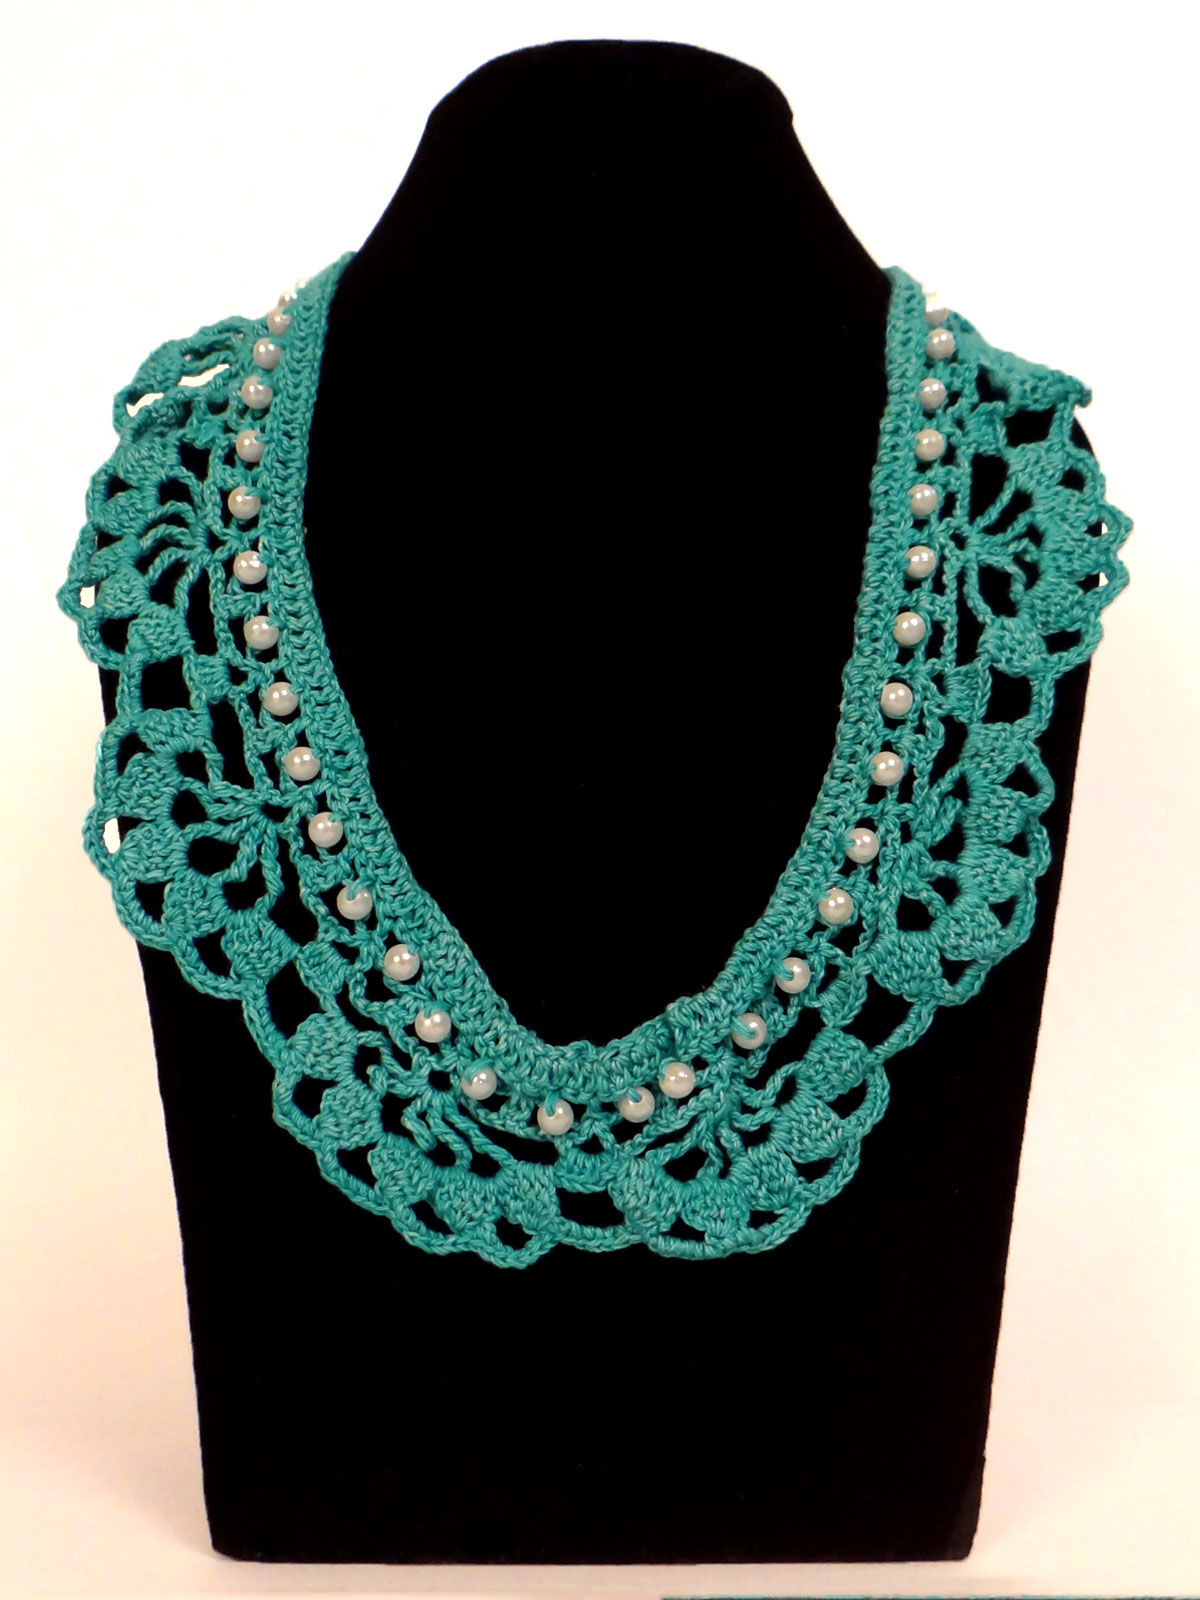 Turquoise  crochet fabric necklace with white pearl beads